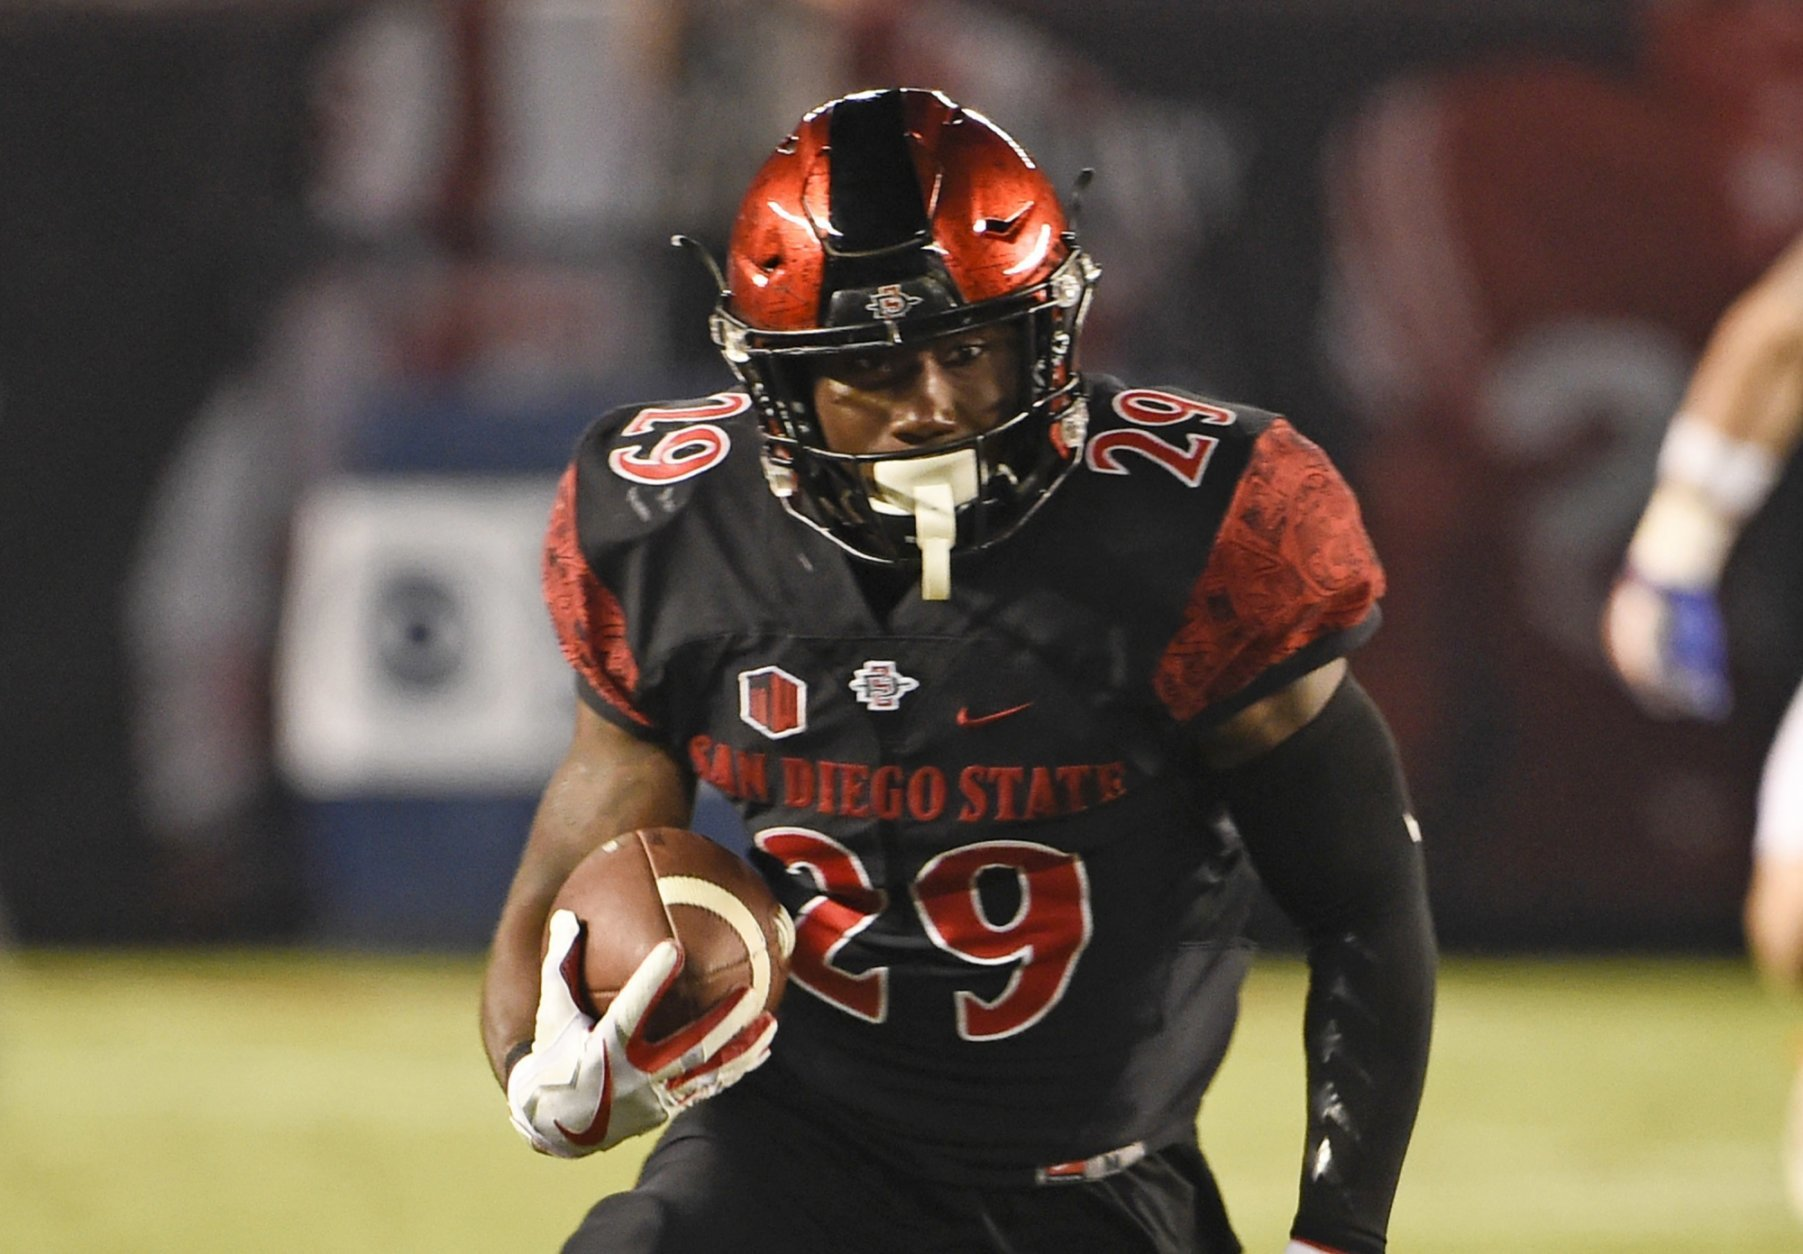 FILE - In this Oct. 14, 2017, file photo, San Diego State running back Juwan Washington runs during an NCAA college football game against Boise State in San Diego. Washington is ready for his turn to be San Diego State's featured running back. If he's as successful as D.J. Pumphrey and Rashaad Penny before him, the Aztecs will have their third straight 2,000-yard rusher. (AP Photo/Denis Poroy, file)